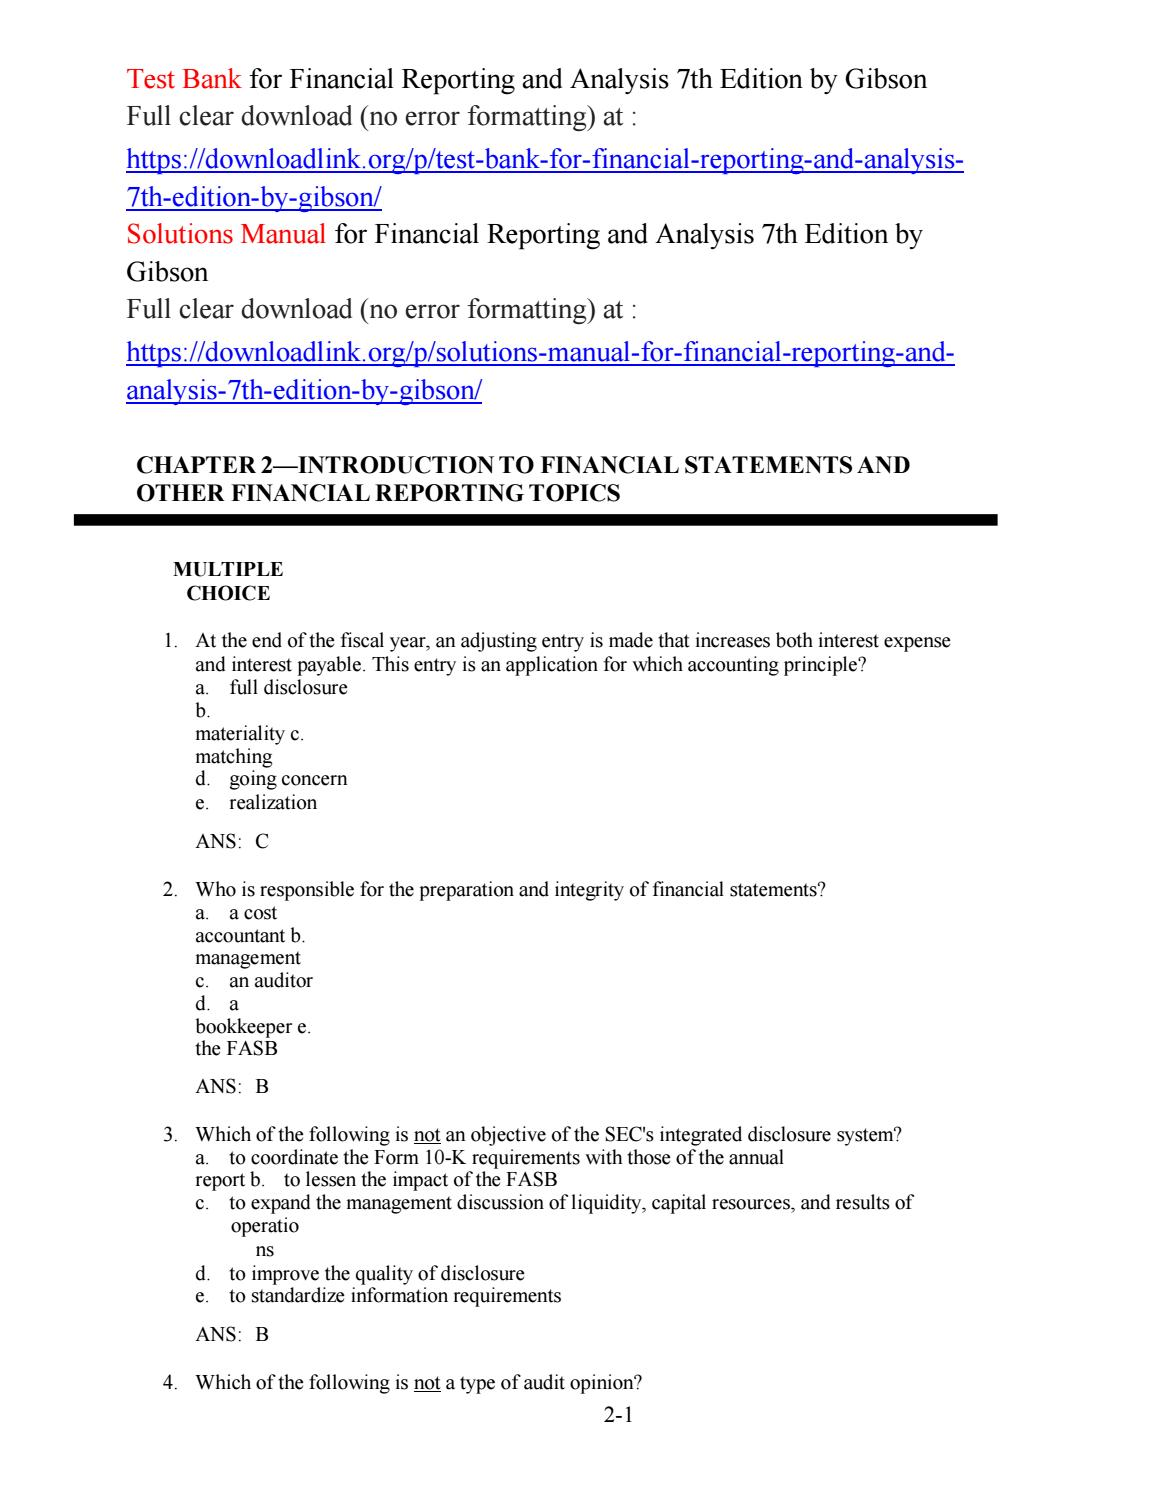 Test Bank for Financial Reporting and Analysis 7th Edition by Gibson by  jack4356 - issuu